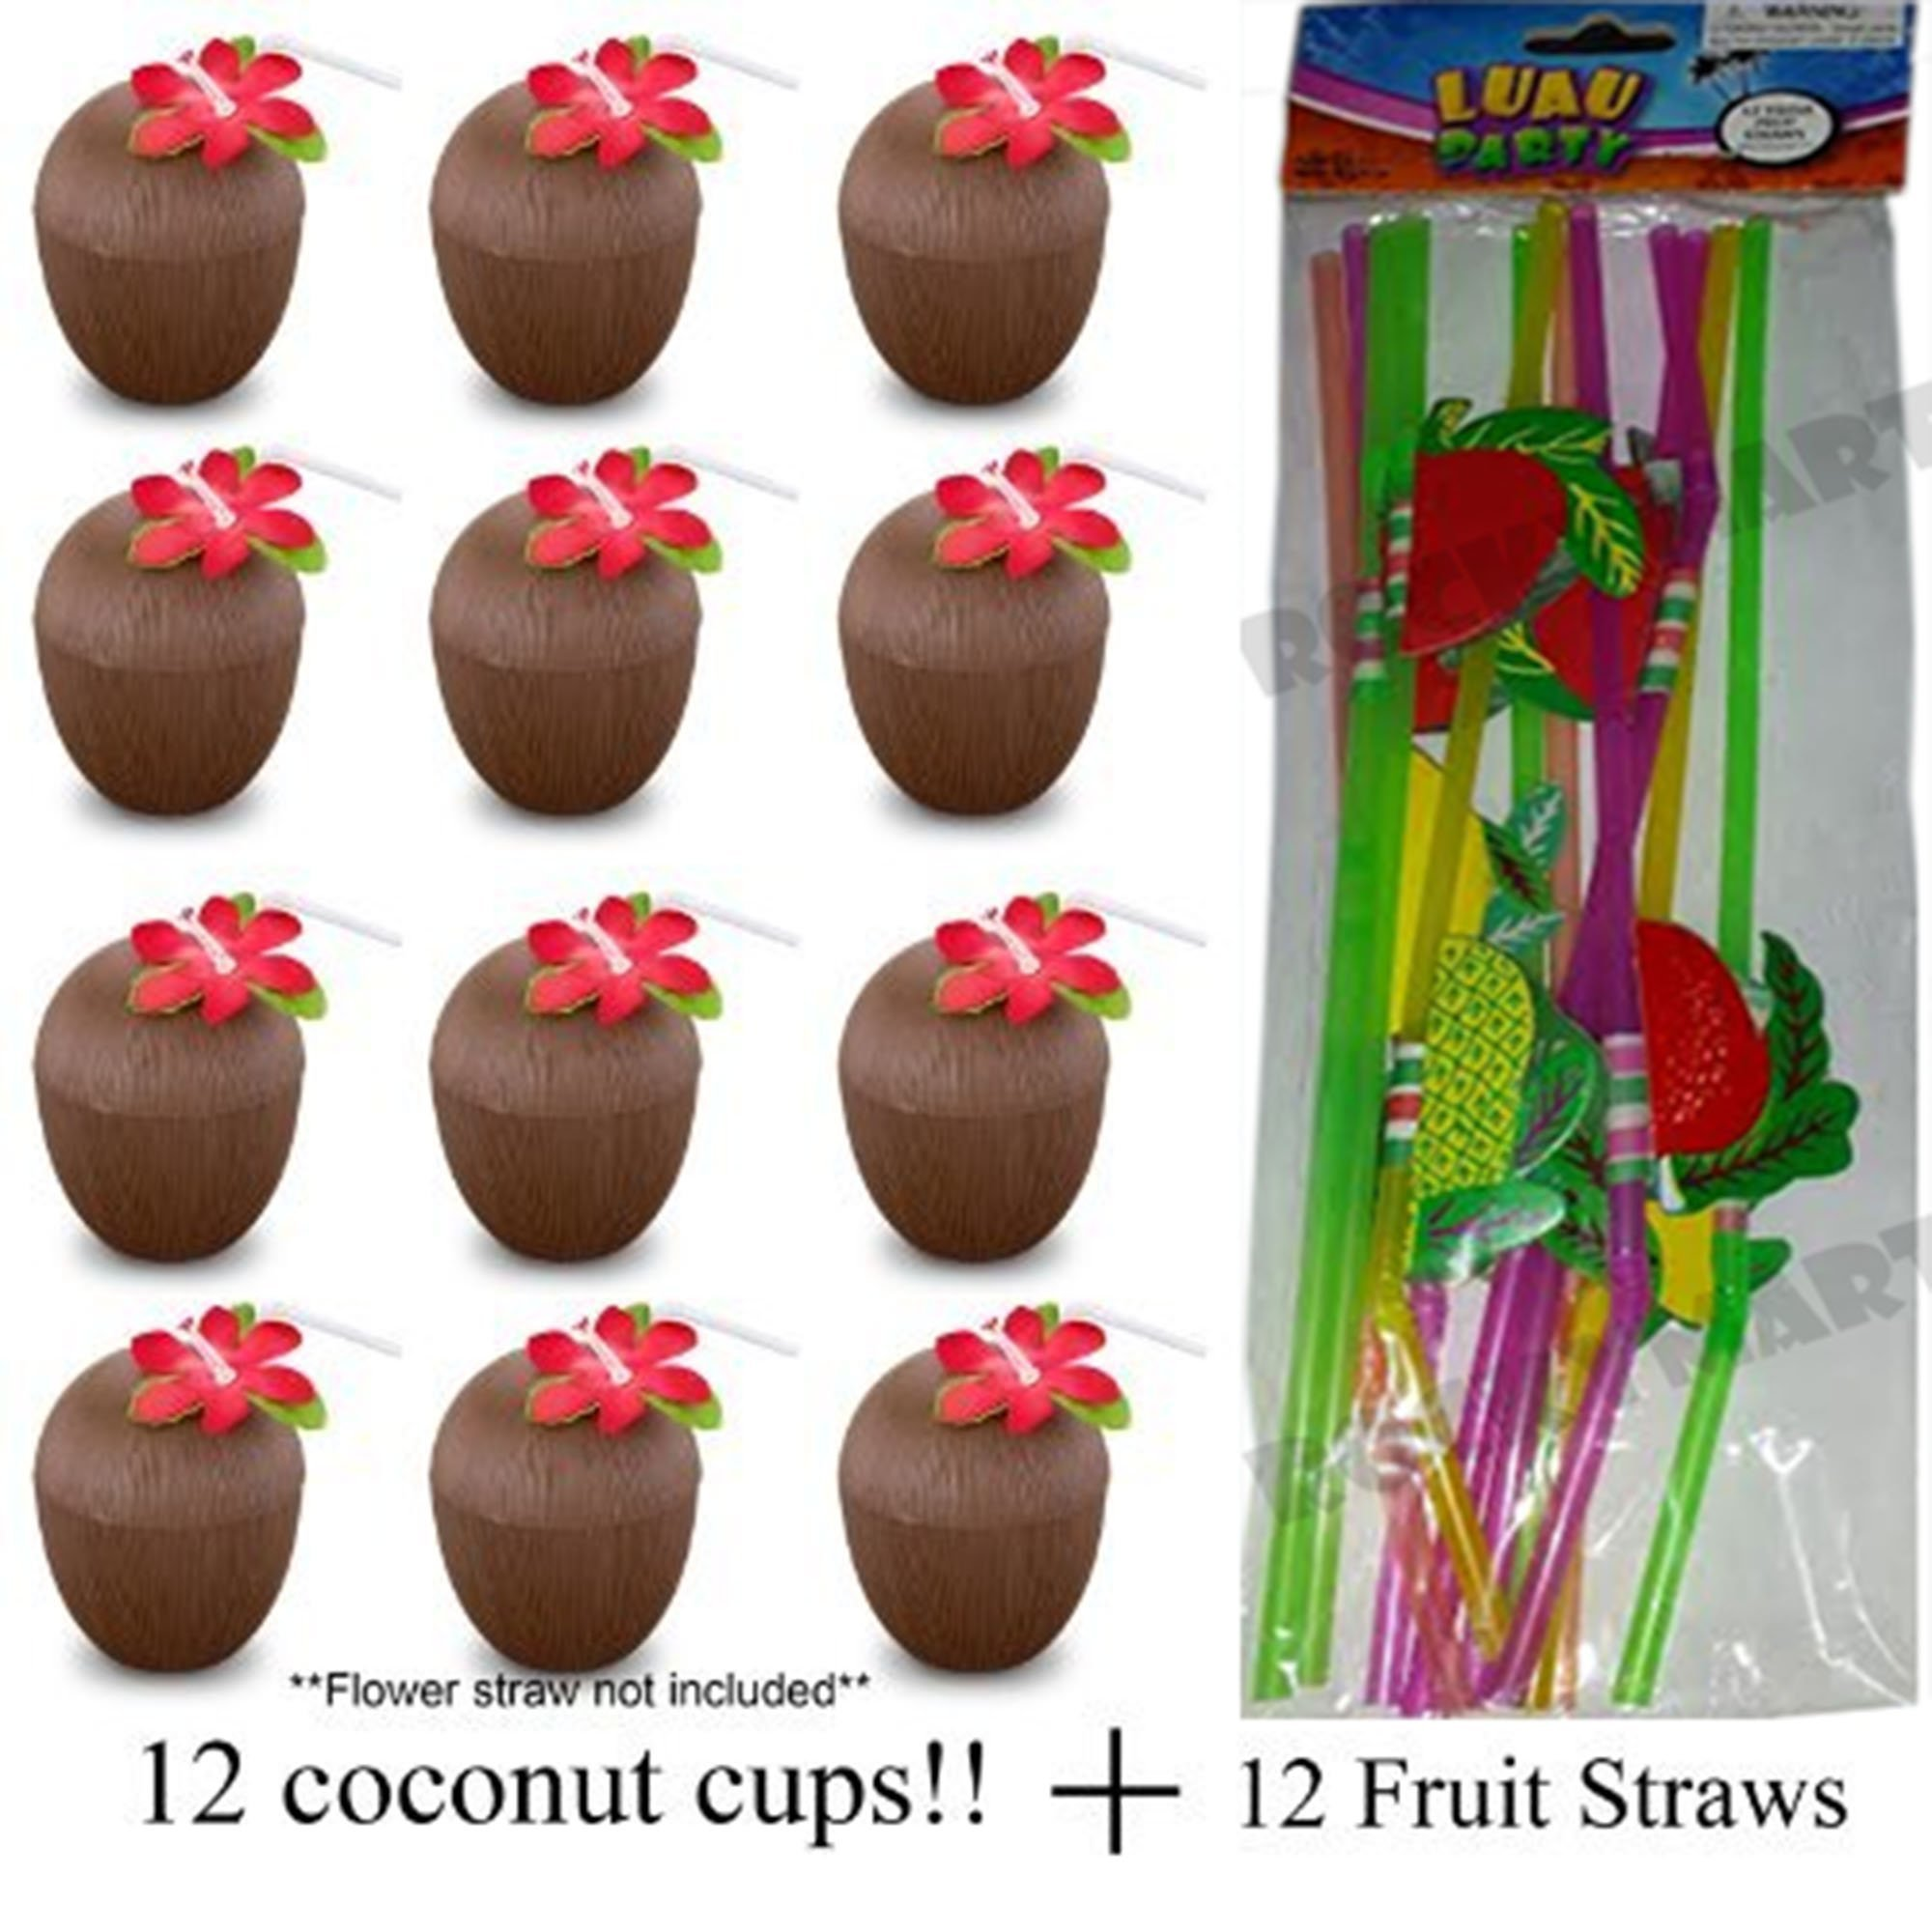 Lot of (12) Coconut Cups For Summer Hawaiian Party Luau W/ 12 FREE FRUIT STRAWS!